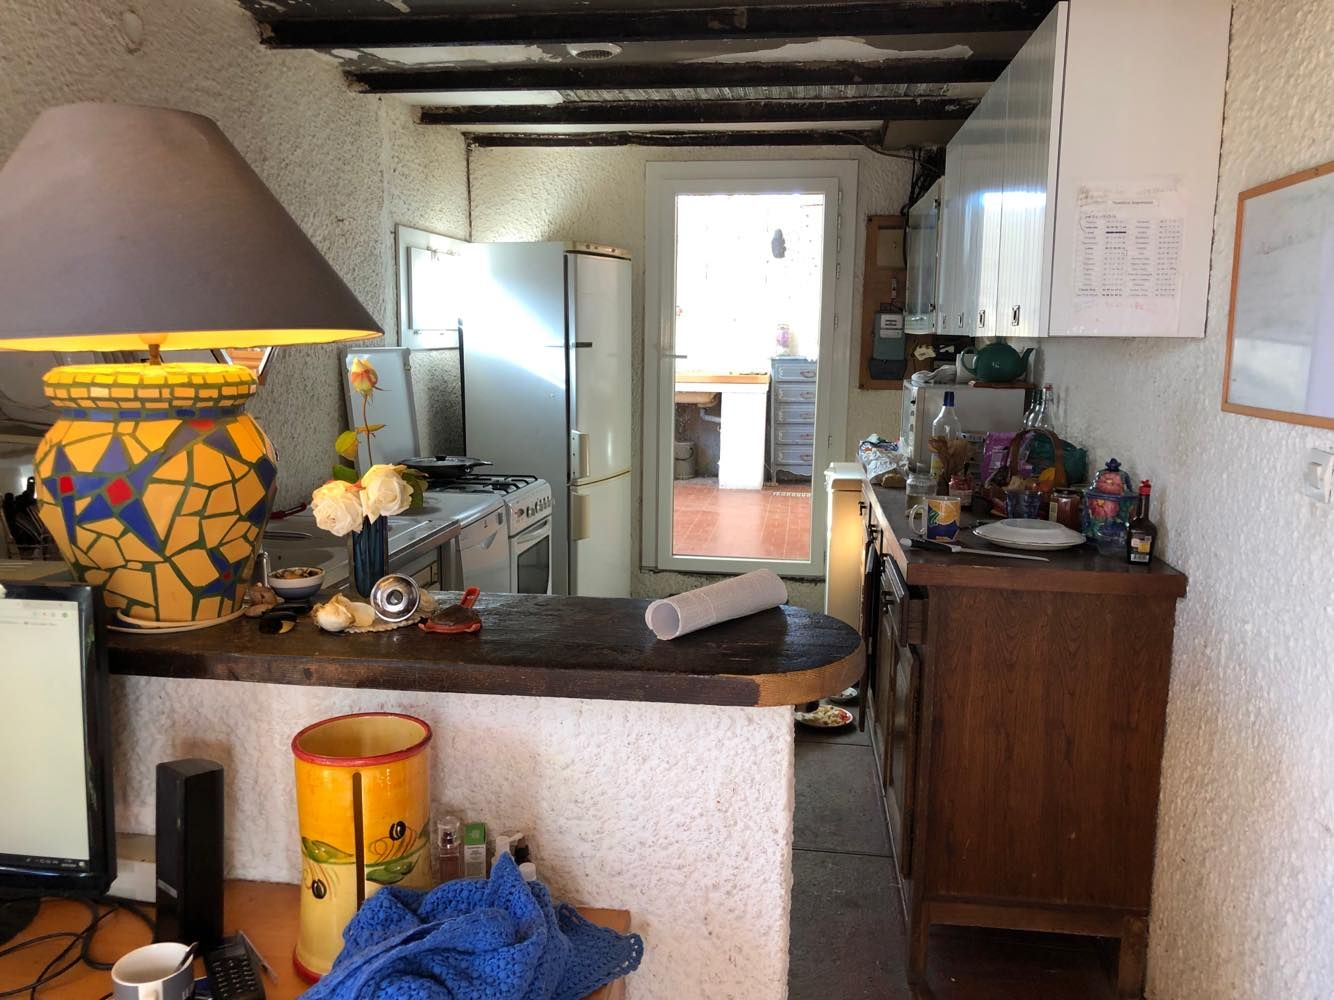 Cuisine-Colocation Montpellier CONTRESERVICES & Location Chambre à louer Montpellier CONTRESERVICES | Loue chambre meublée Montpellier CONTRESERVICES | Logement Montpellier CONTRESERVICES